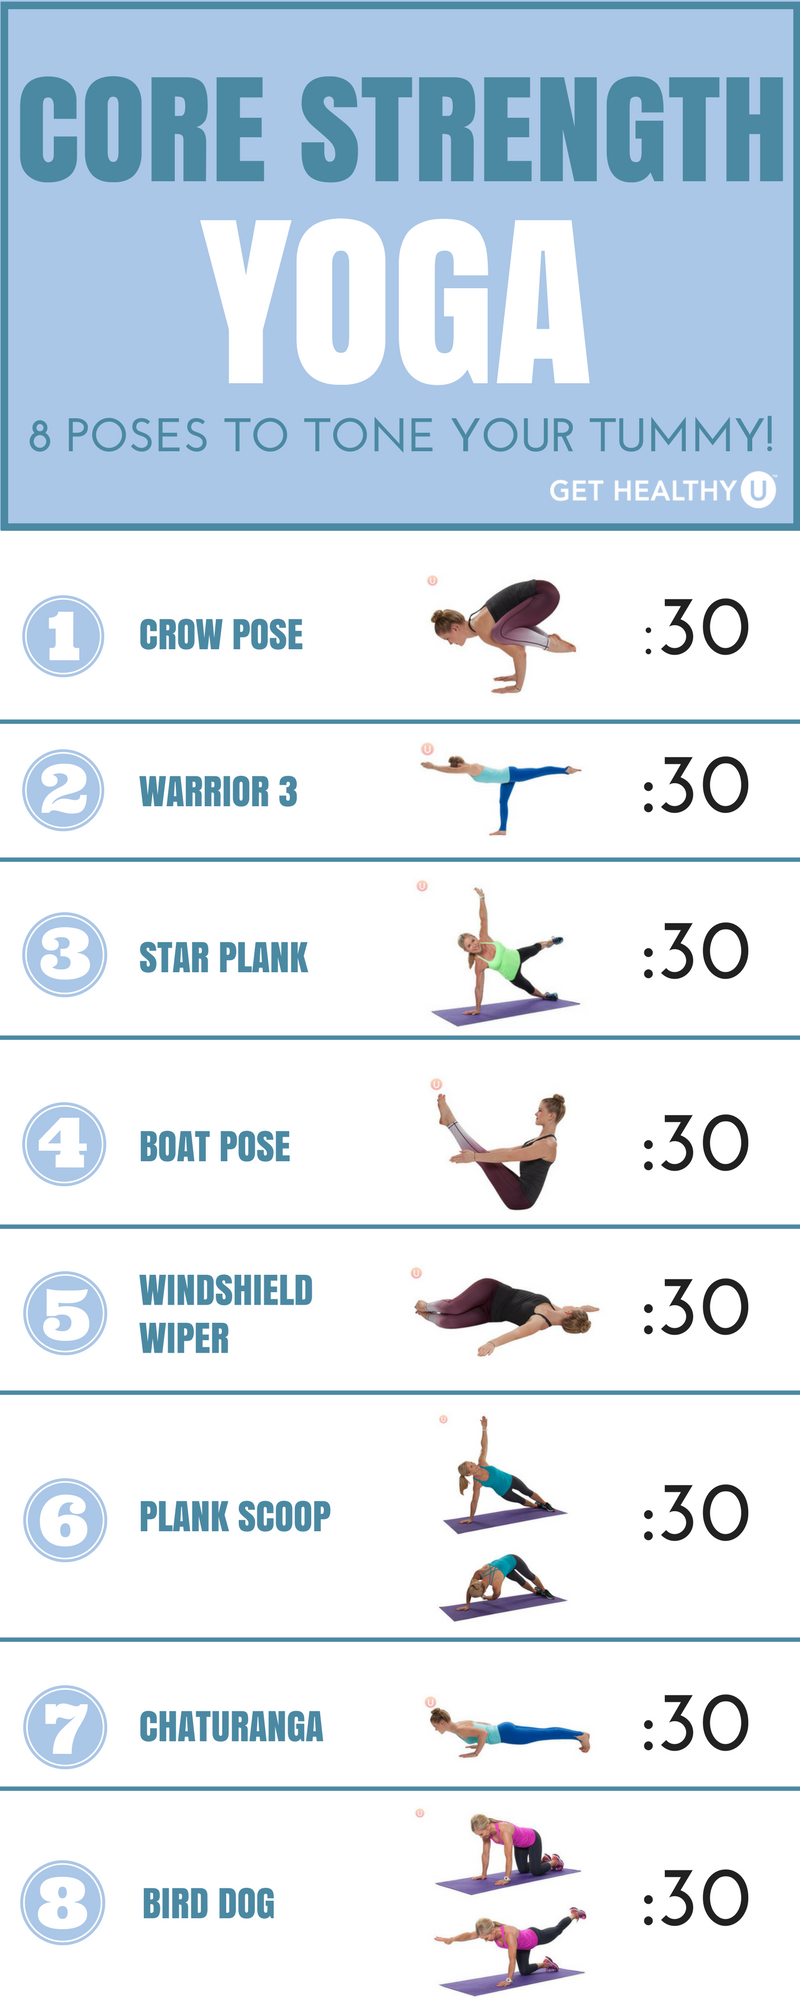 8 Challenging Yoga Poses For Core Strength Strength Yoga Easy Yoga Workouts Yoga Challenge Poses